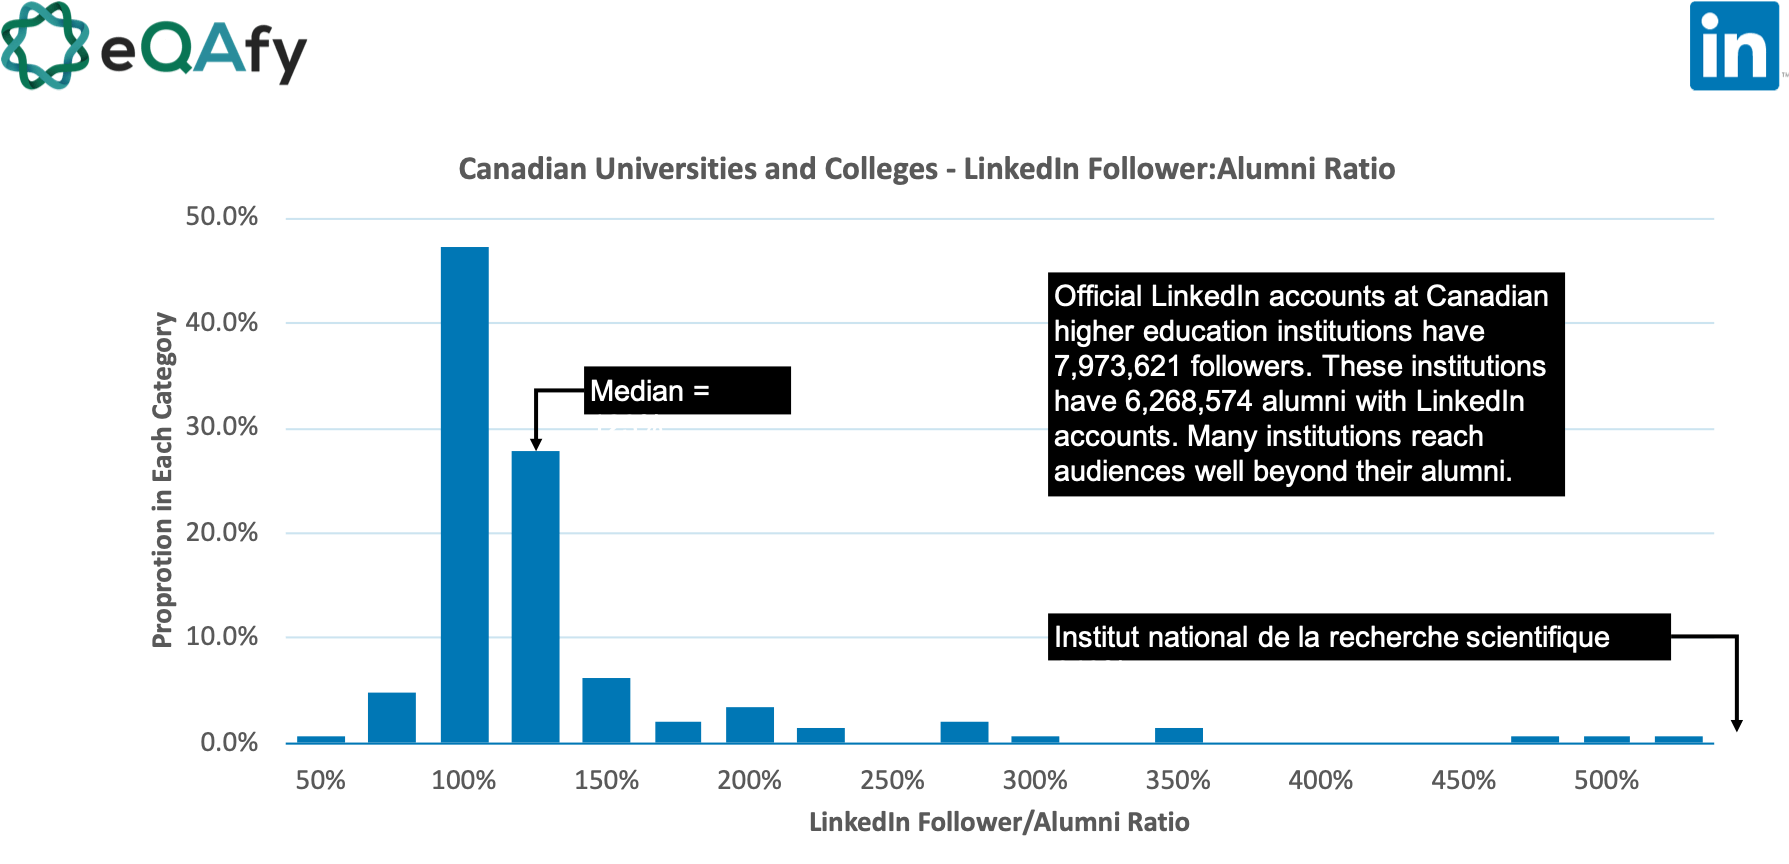 Ratio of LinkedIn Followers to Alumni for higher education/post-secondary institutions in Canada